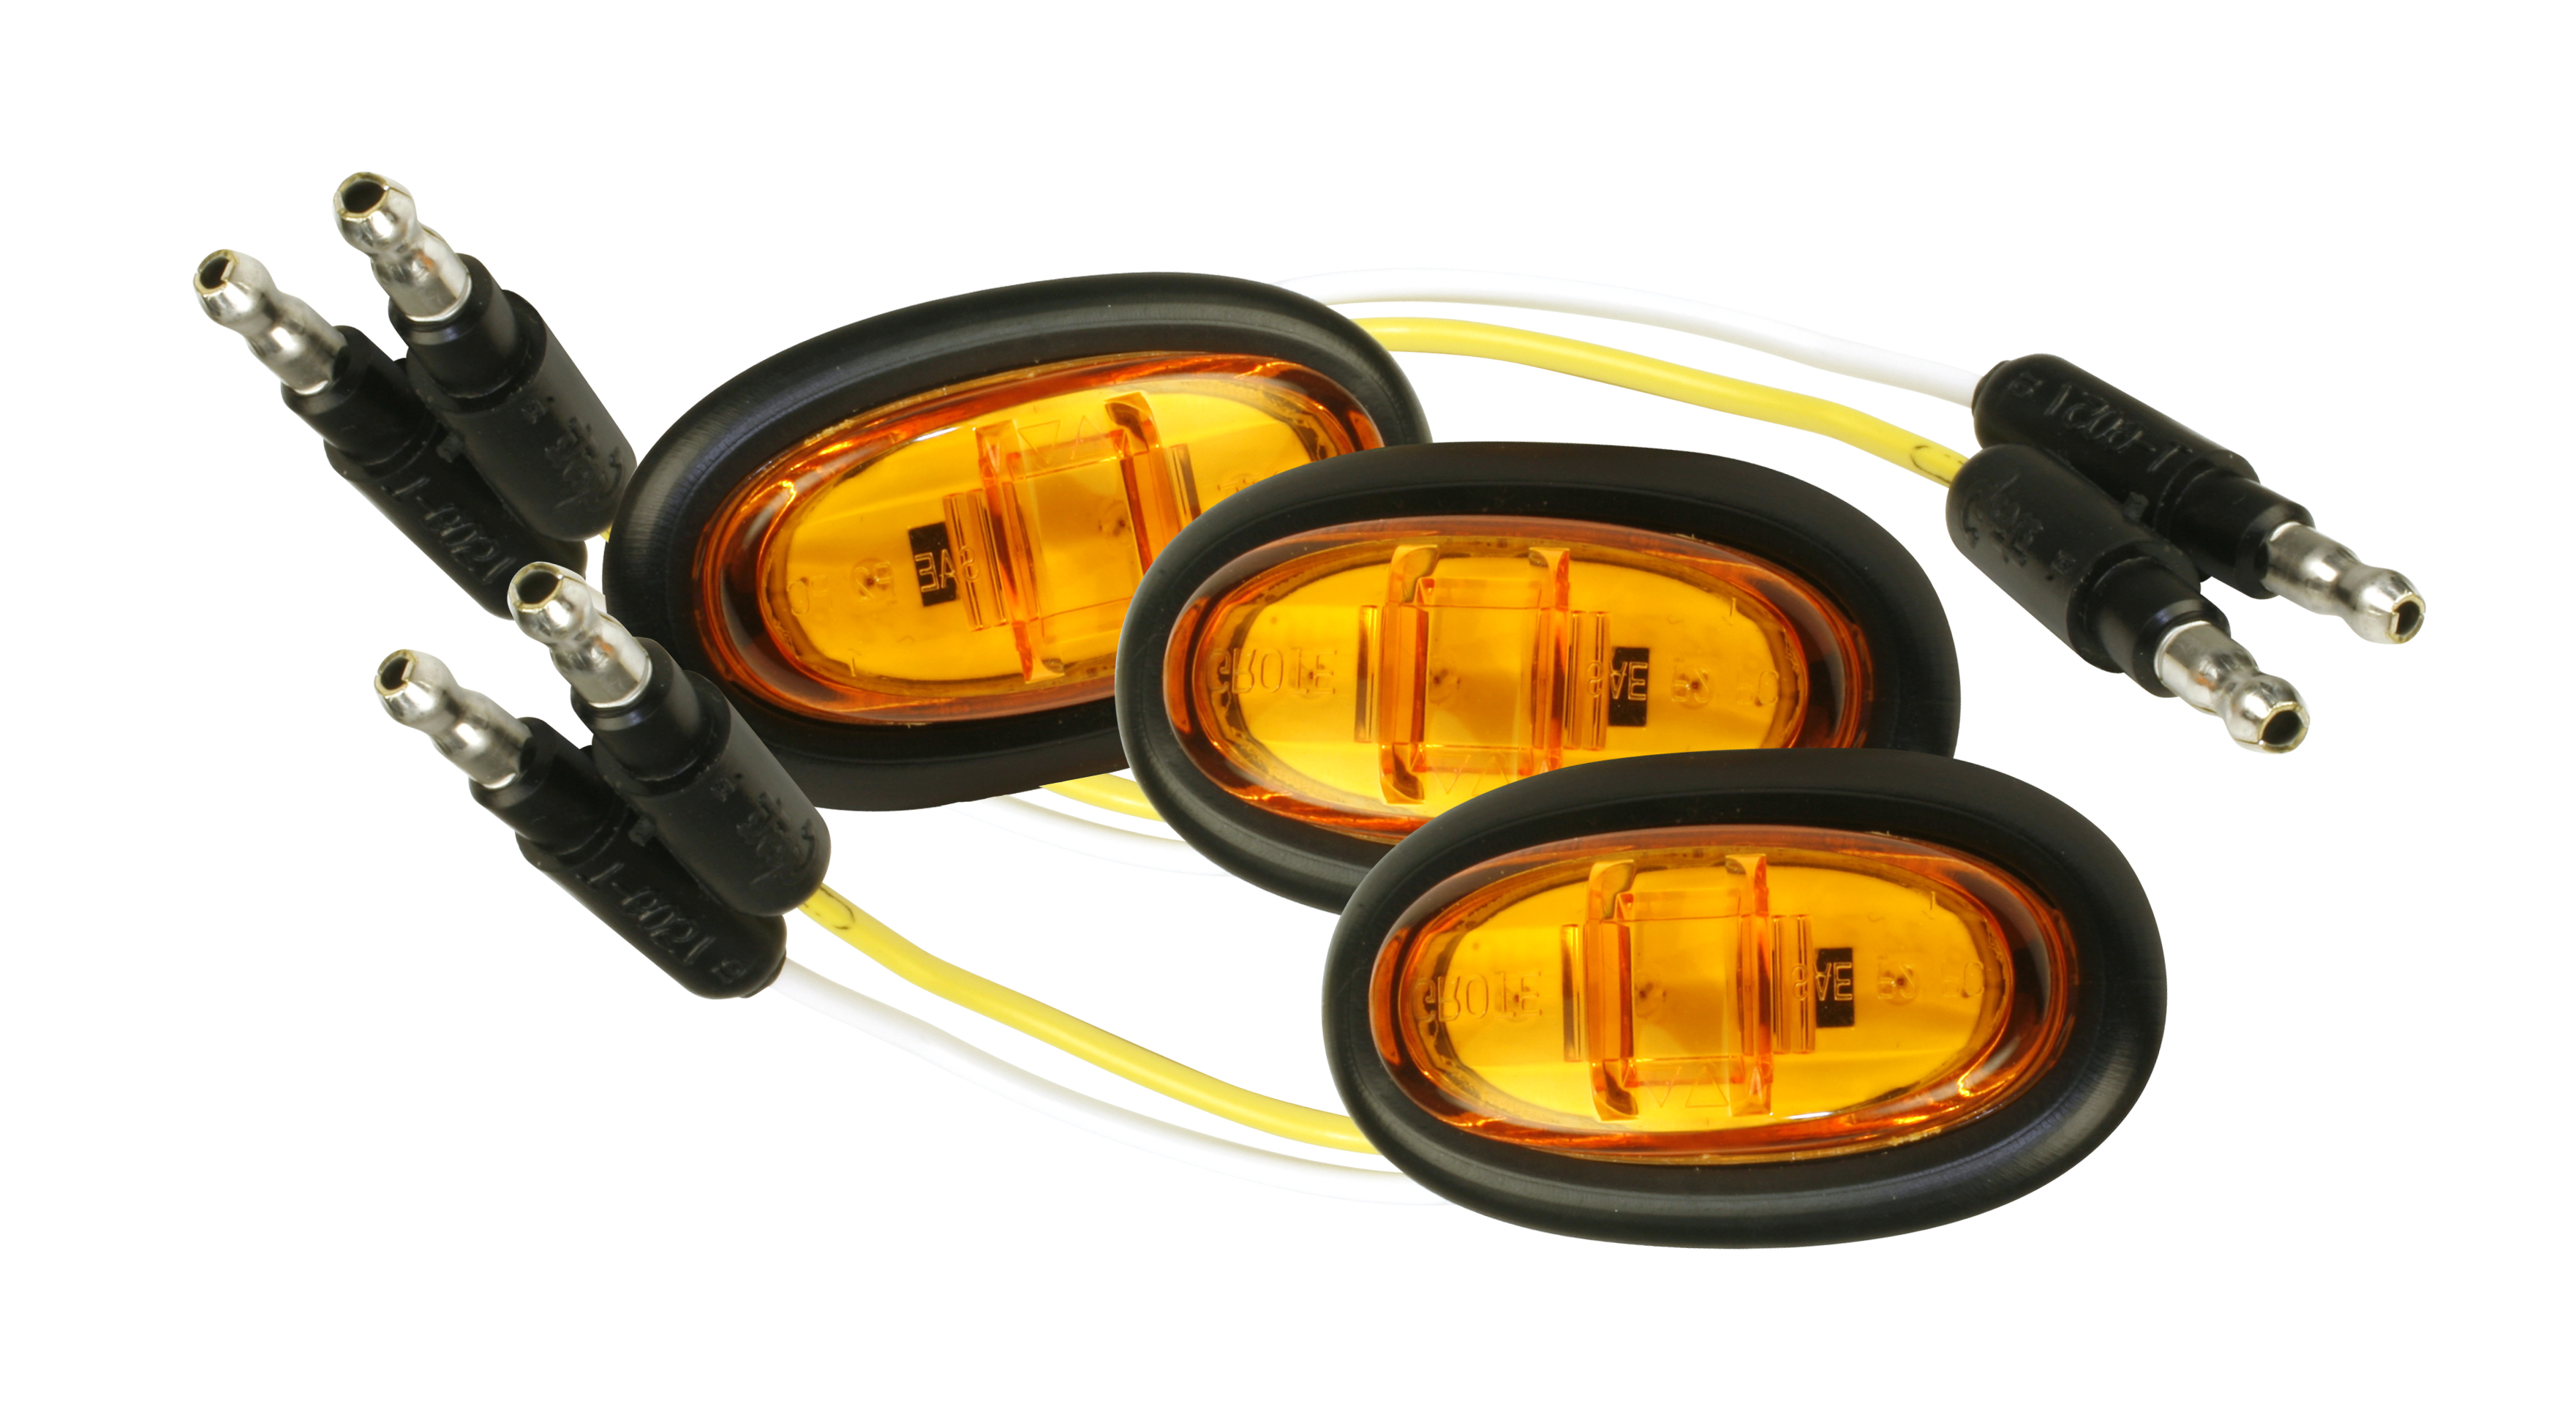 Grote Industries - 47973-3 – MicroNova® LED Clearance Marker Lights, PC Rated, w/ Grommet, Yellow, Bulk Pack